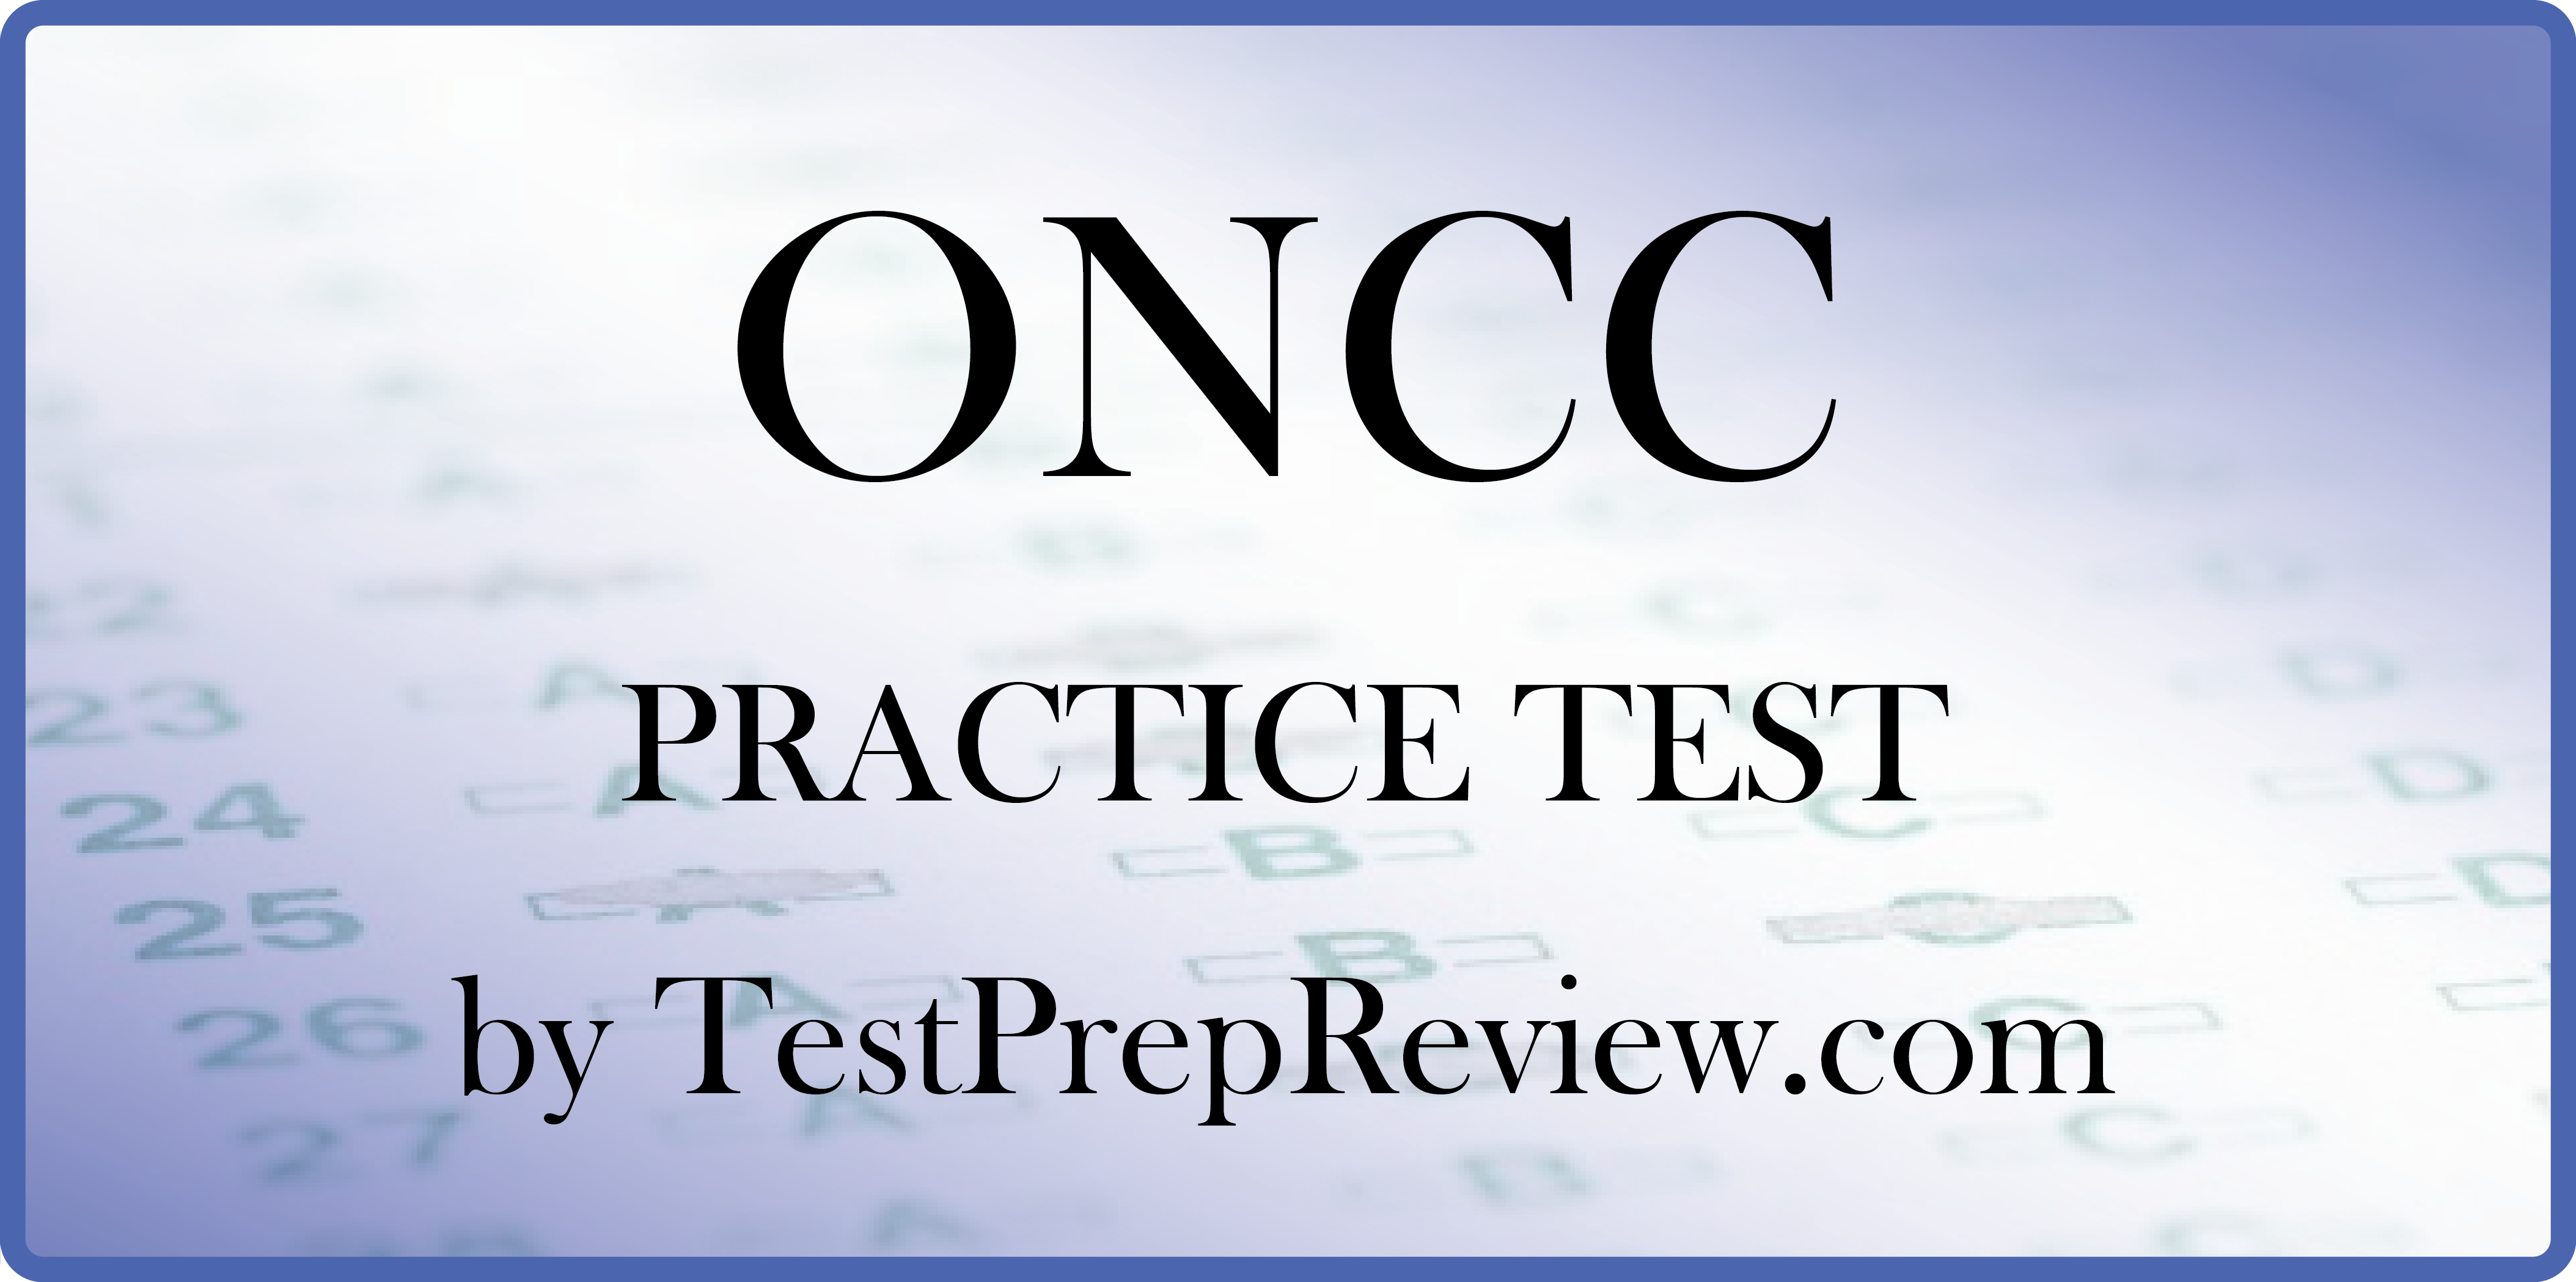 Free oncology nursing certification practice test offered by free oncology nursing certification practice test offered by testprepreview oncology nursing certification test study aid 1betcityfo Image collections